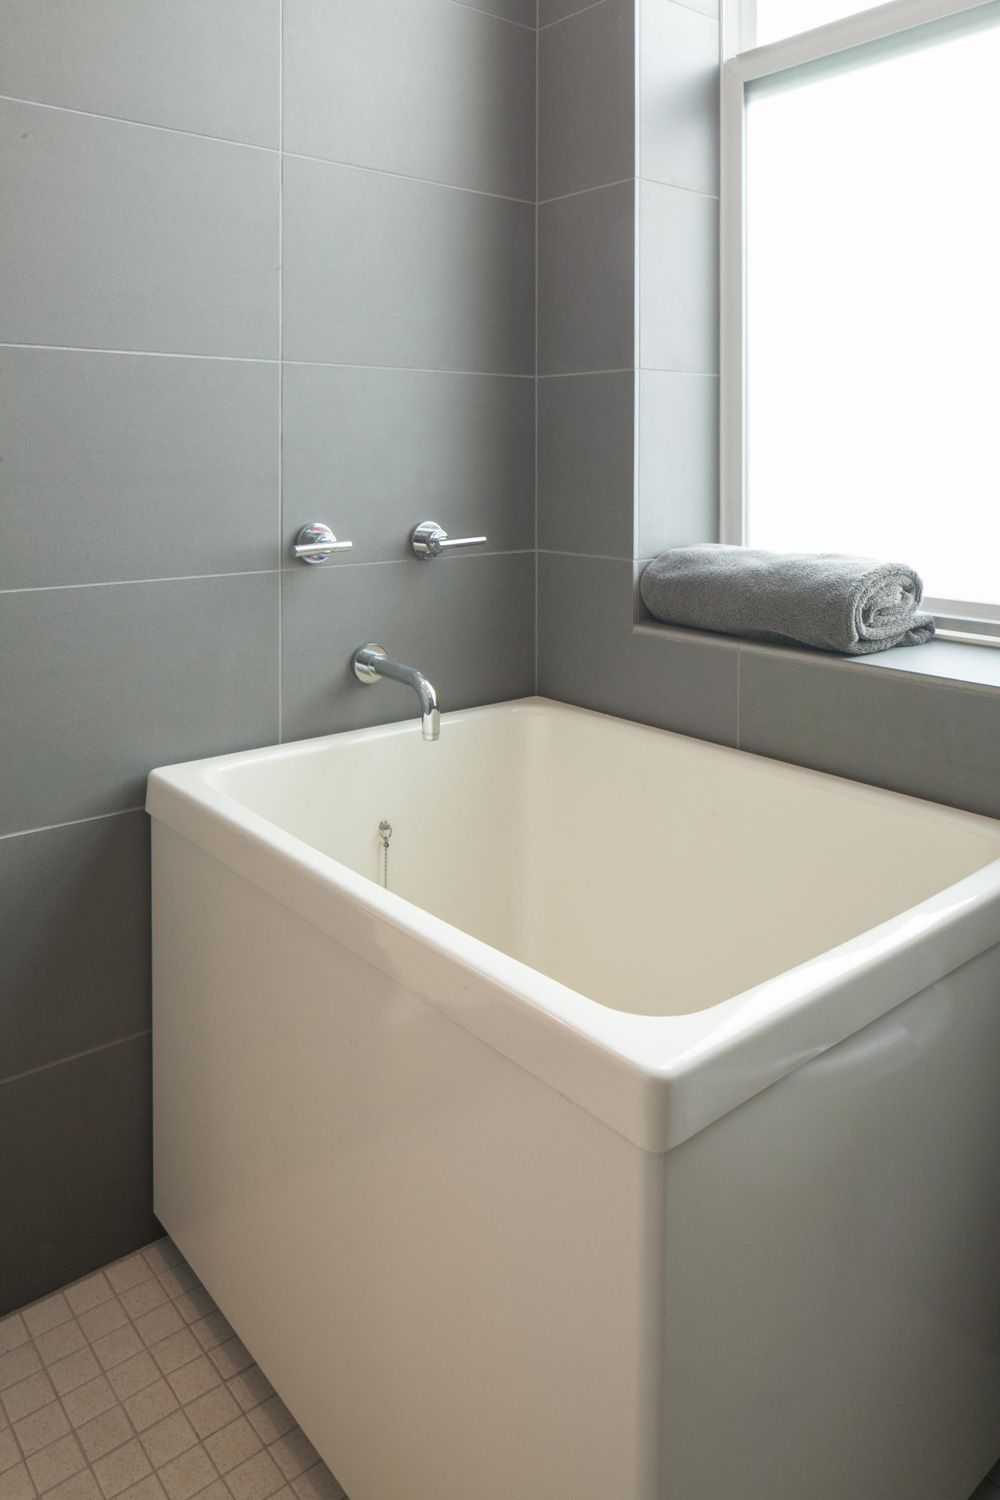 Superbe Japanese Soaking Tub   Ofuro Tub. Square With A Built In Seat. Takes Up  Minimal Amount Of Space. This One Is Freestanding.